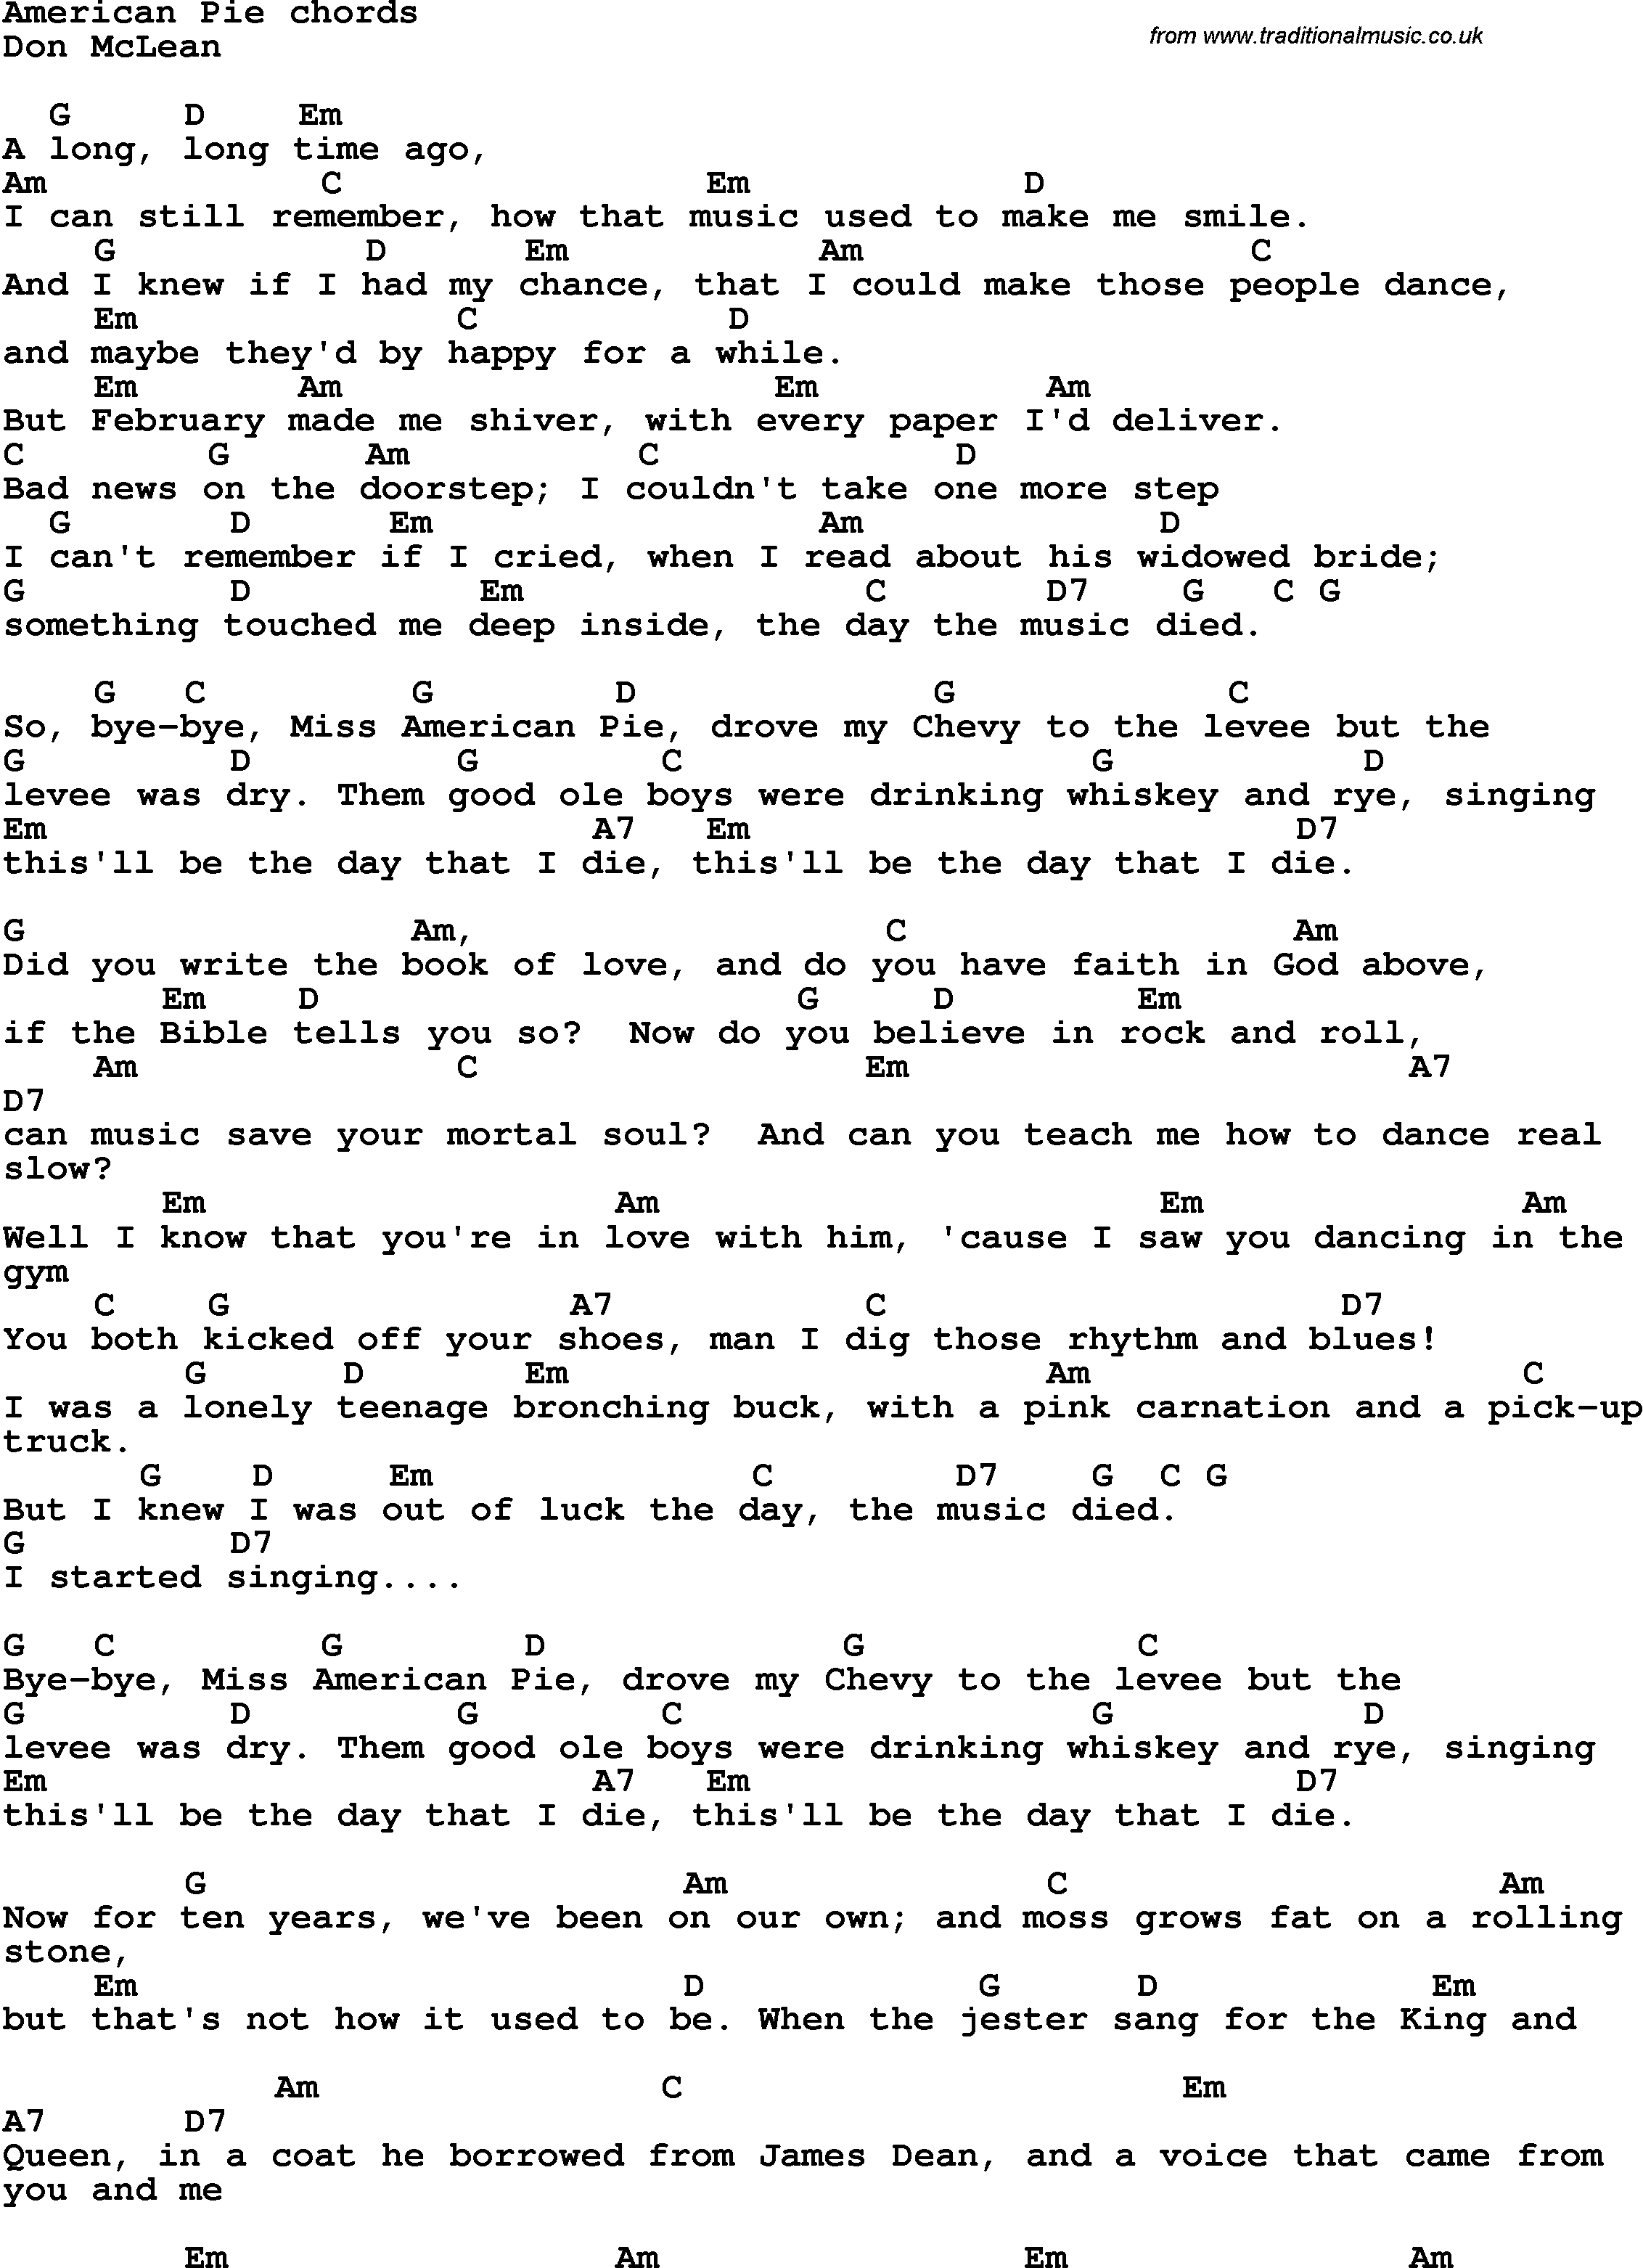 Song Lyrics With Guitar Chords For American Pie Songs Pinterest